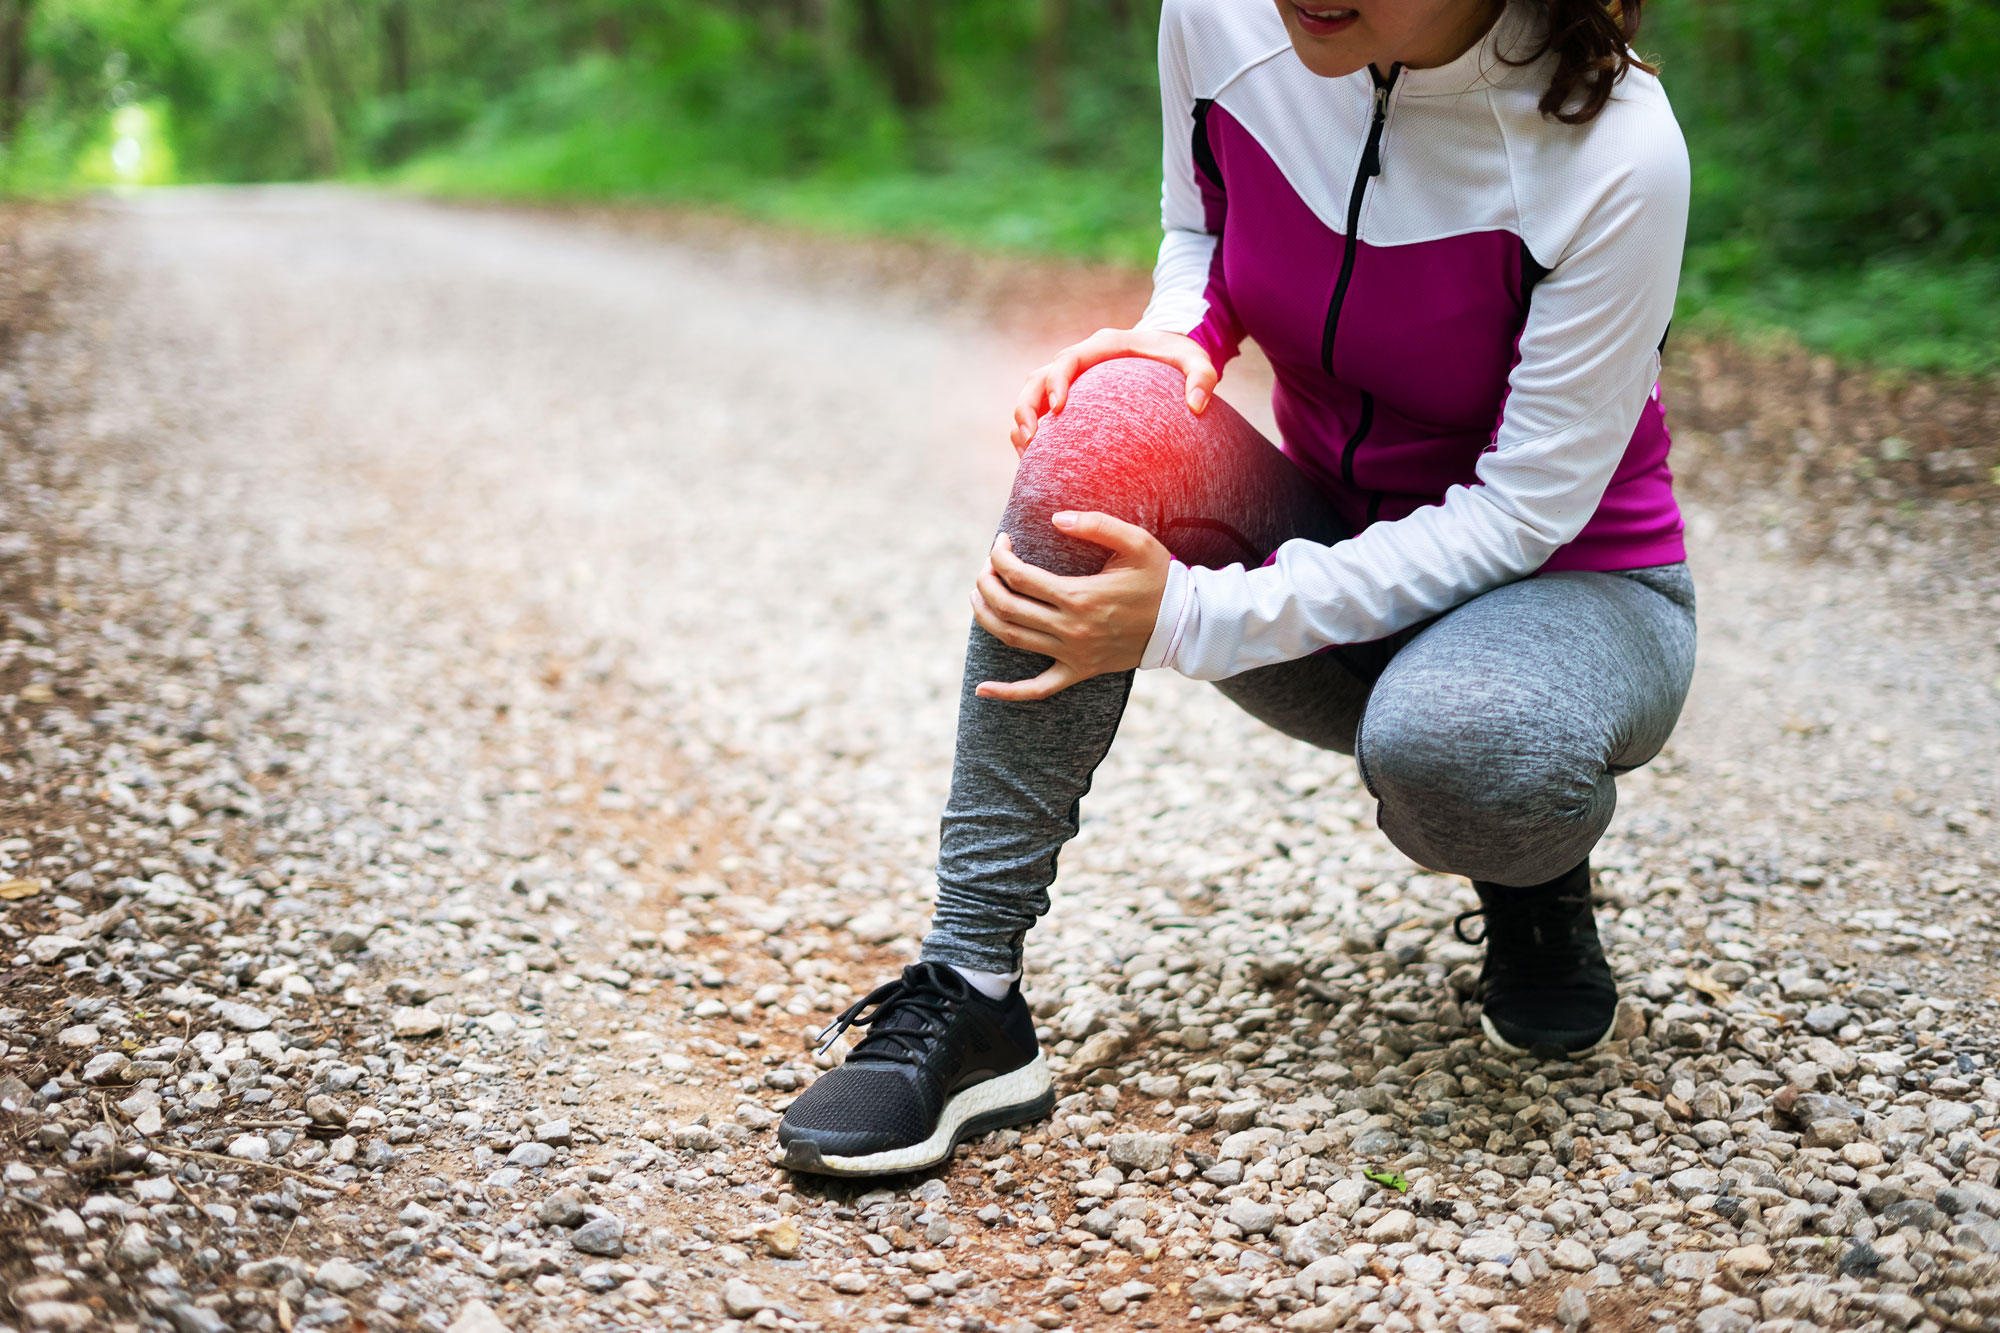 pain profile, Profile: From Marathon Runner to Pain Patient to Health Coach